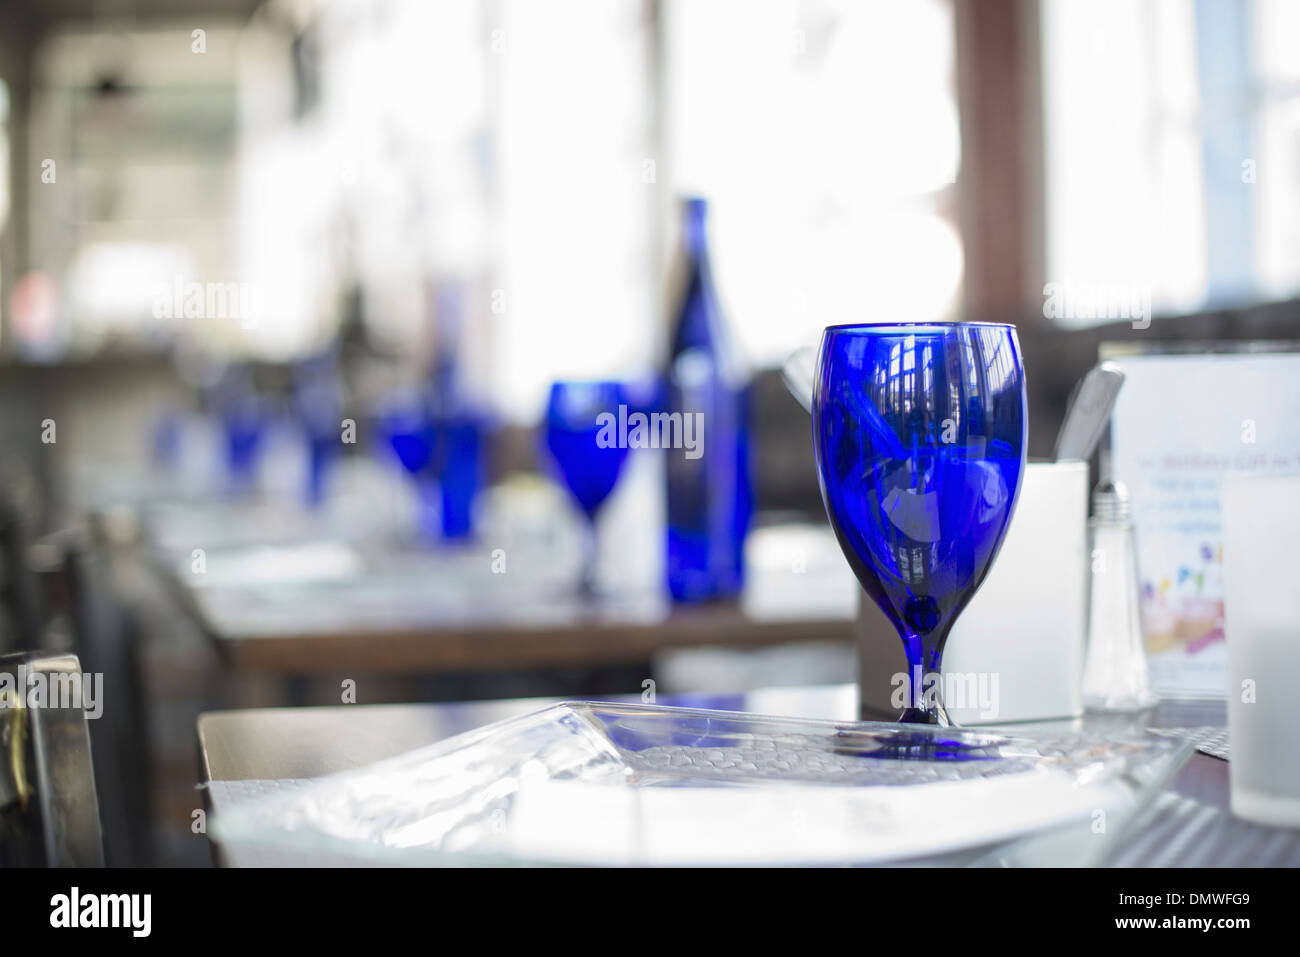 A cafe interior. Bright blue glassware on empty tables. - Stock Image